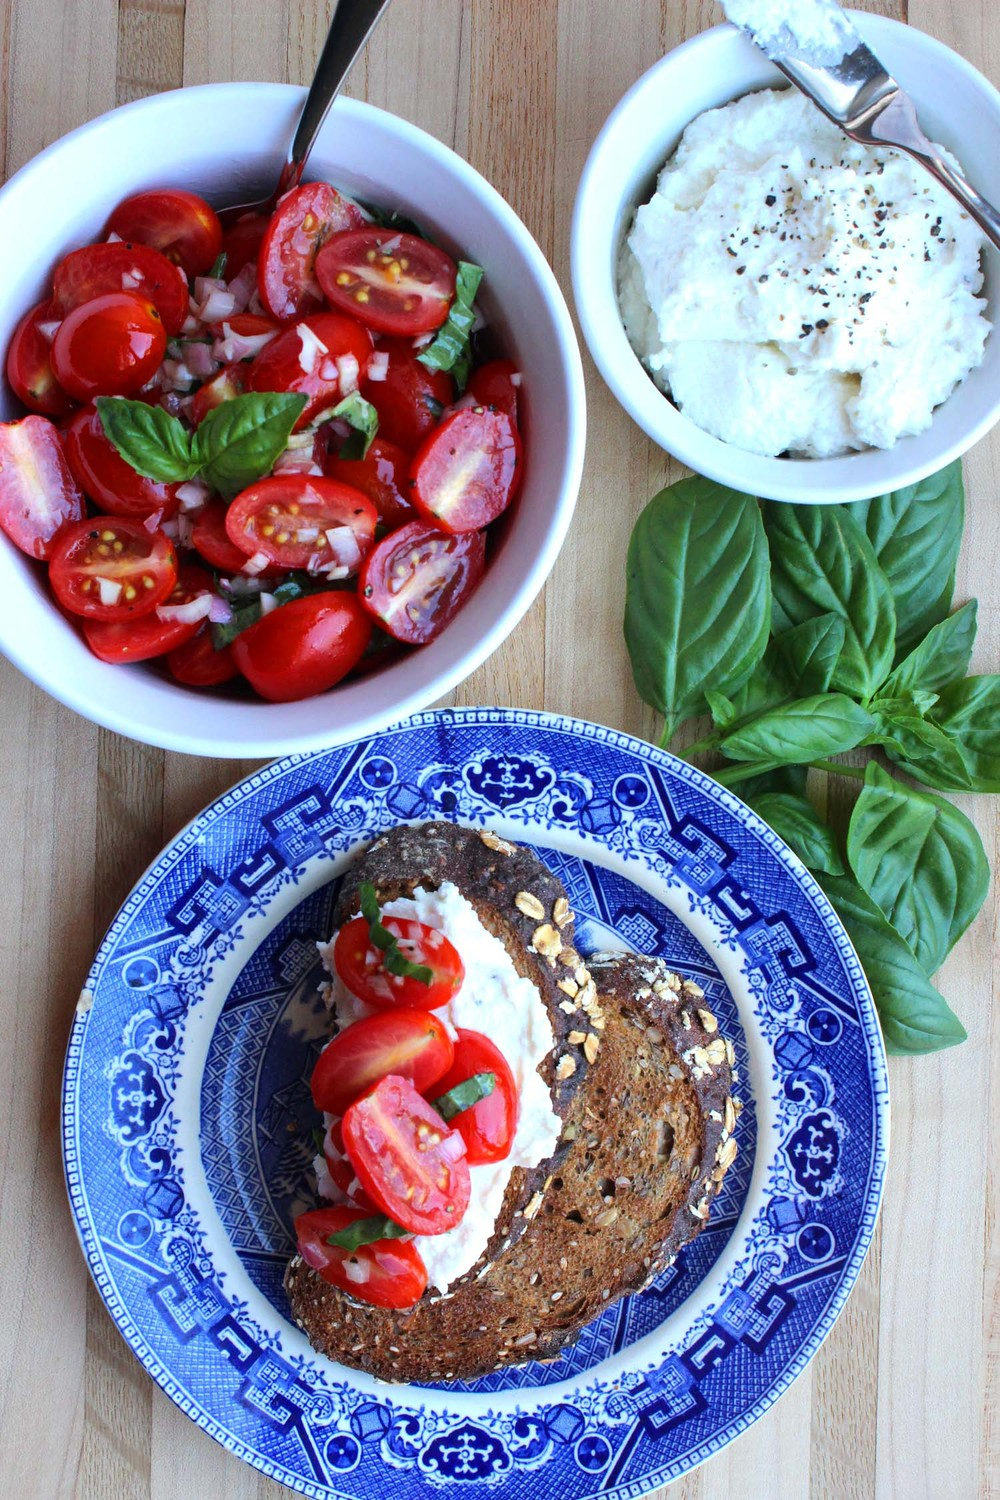 Tomato Crostini with Whipped Feta   | Image:   Laura Messersmith